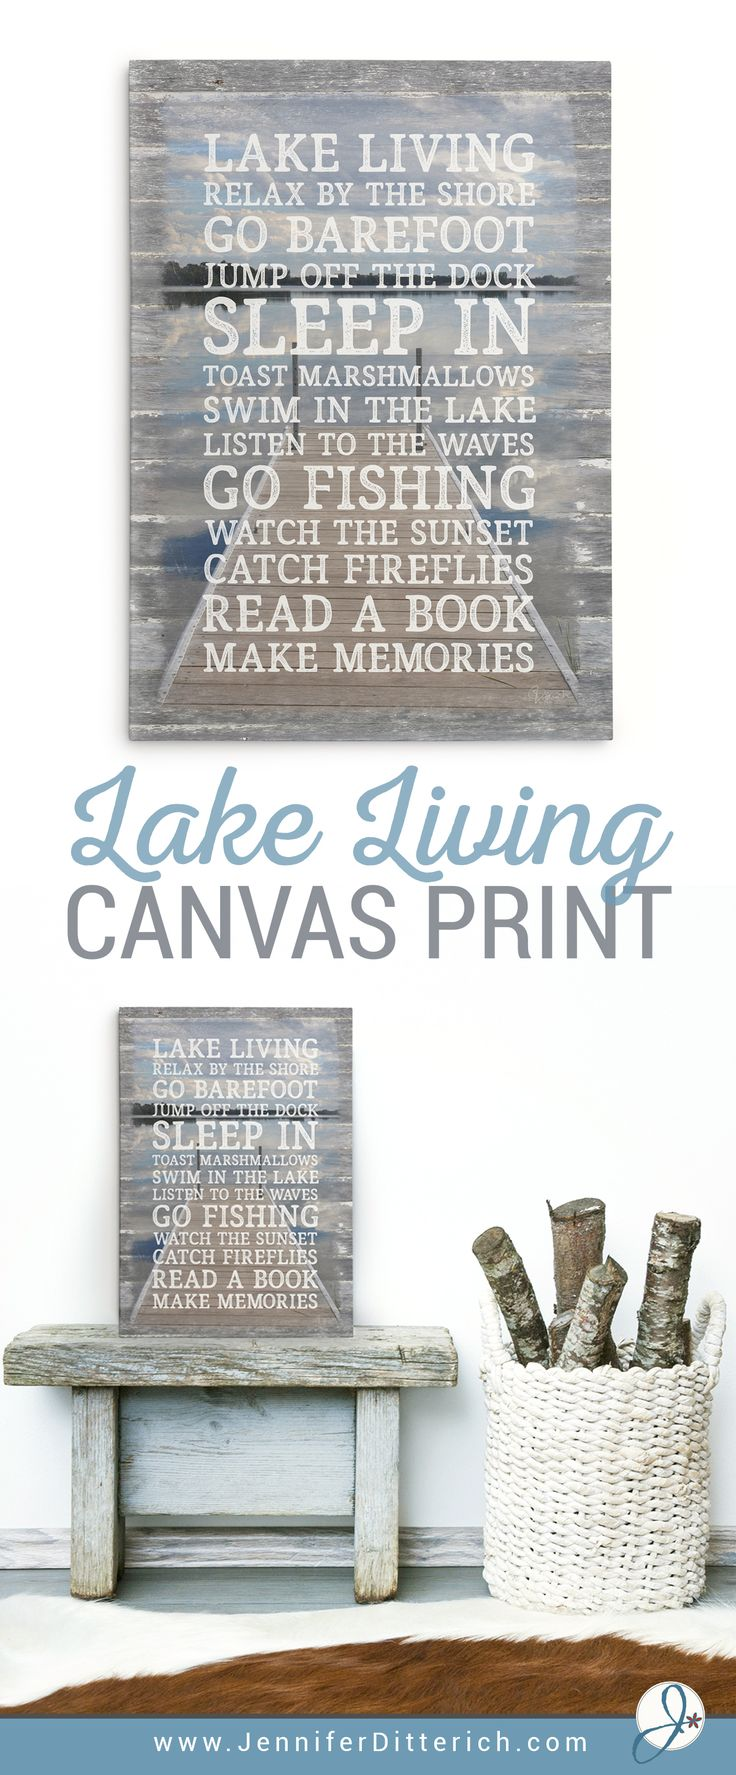 Lake Rules Sign on Canvas   Let everyone know that your rules for lake living are to relax and have fun   Can be customized with your own wording, too.